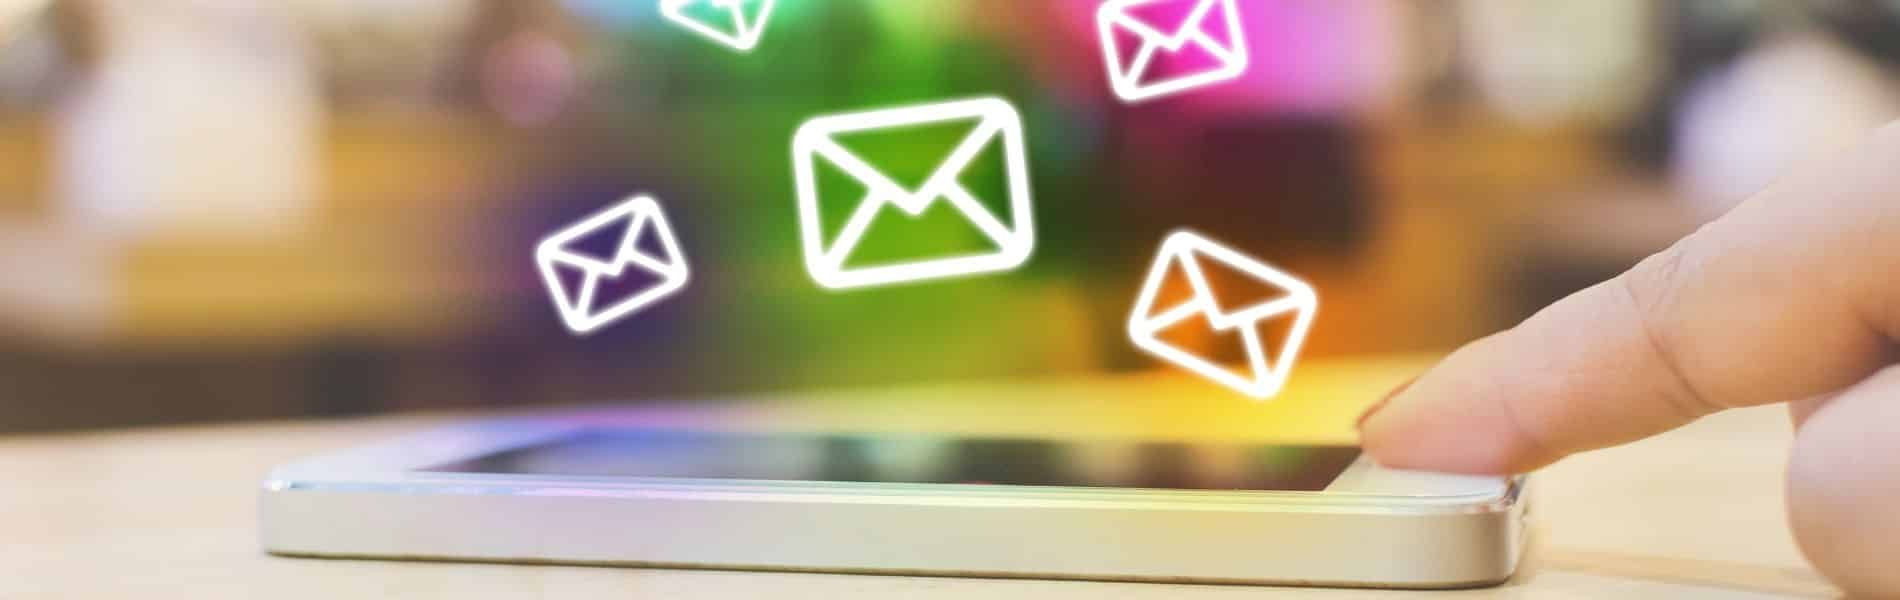 email marketing strategies 2021